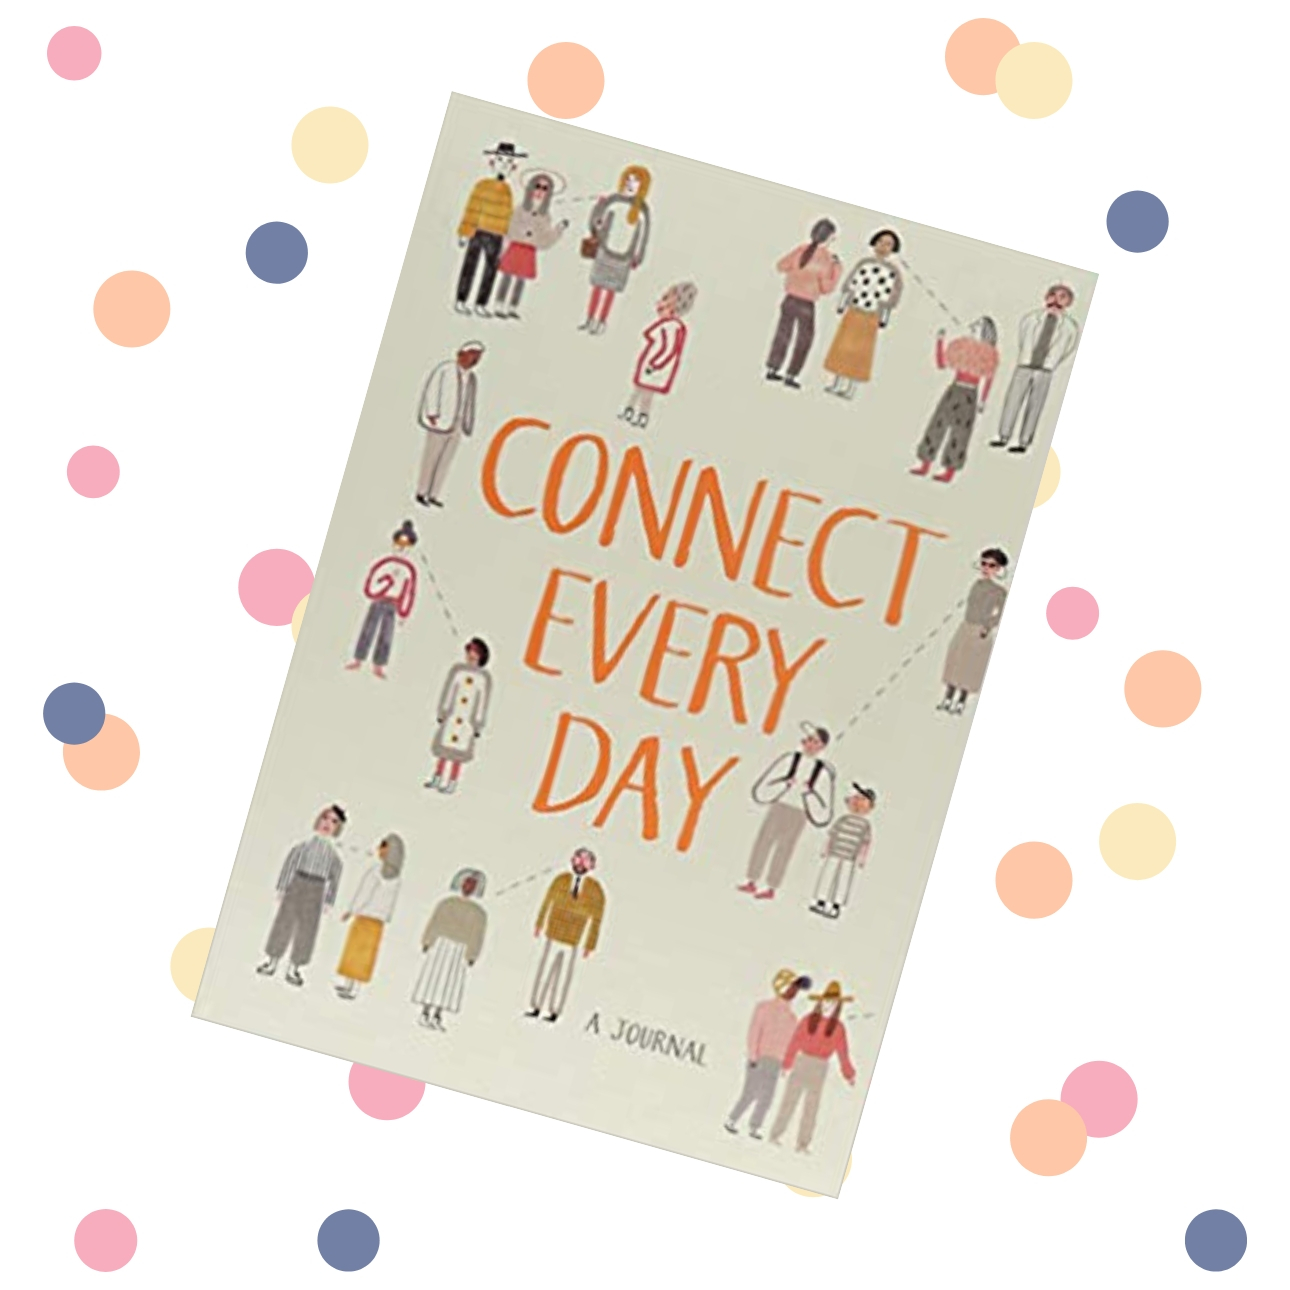 random acts of kindness dagboeken - connect every day